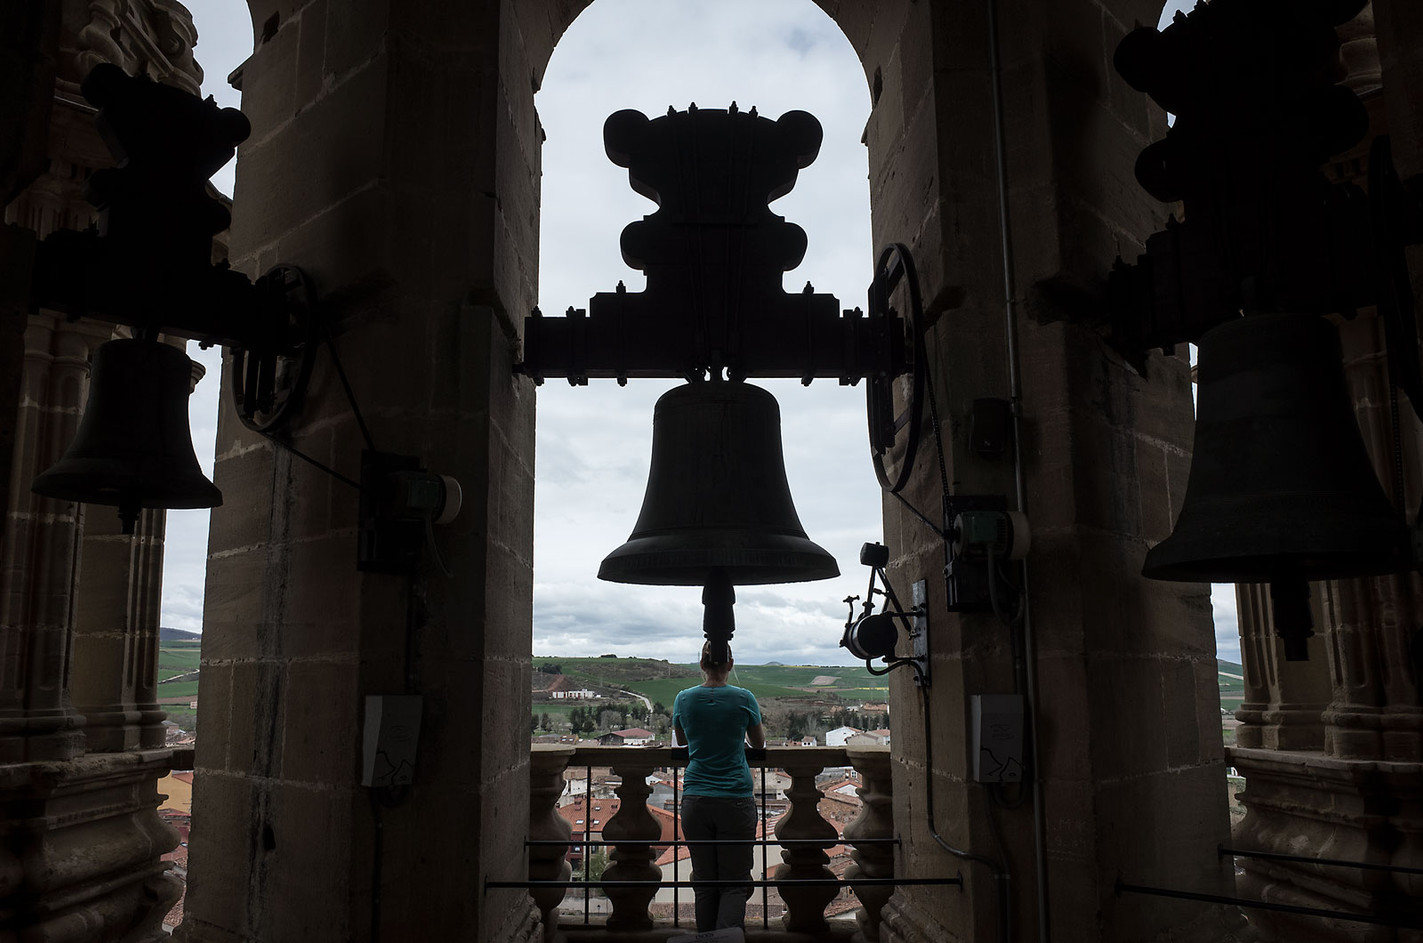 A pilgrim looks out over the city from the bell tower in Santo Domingo del la Calzado.